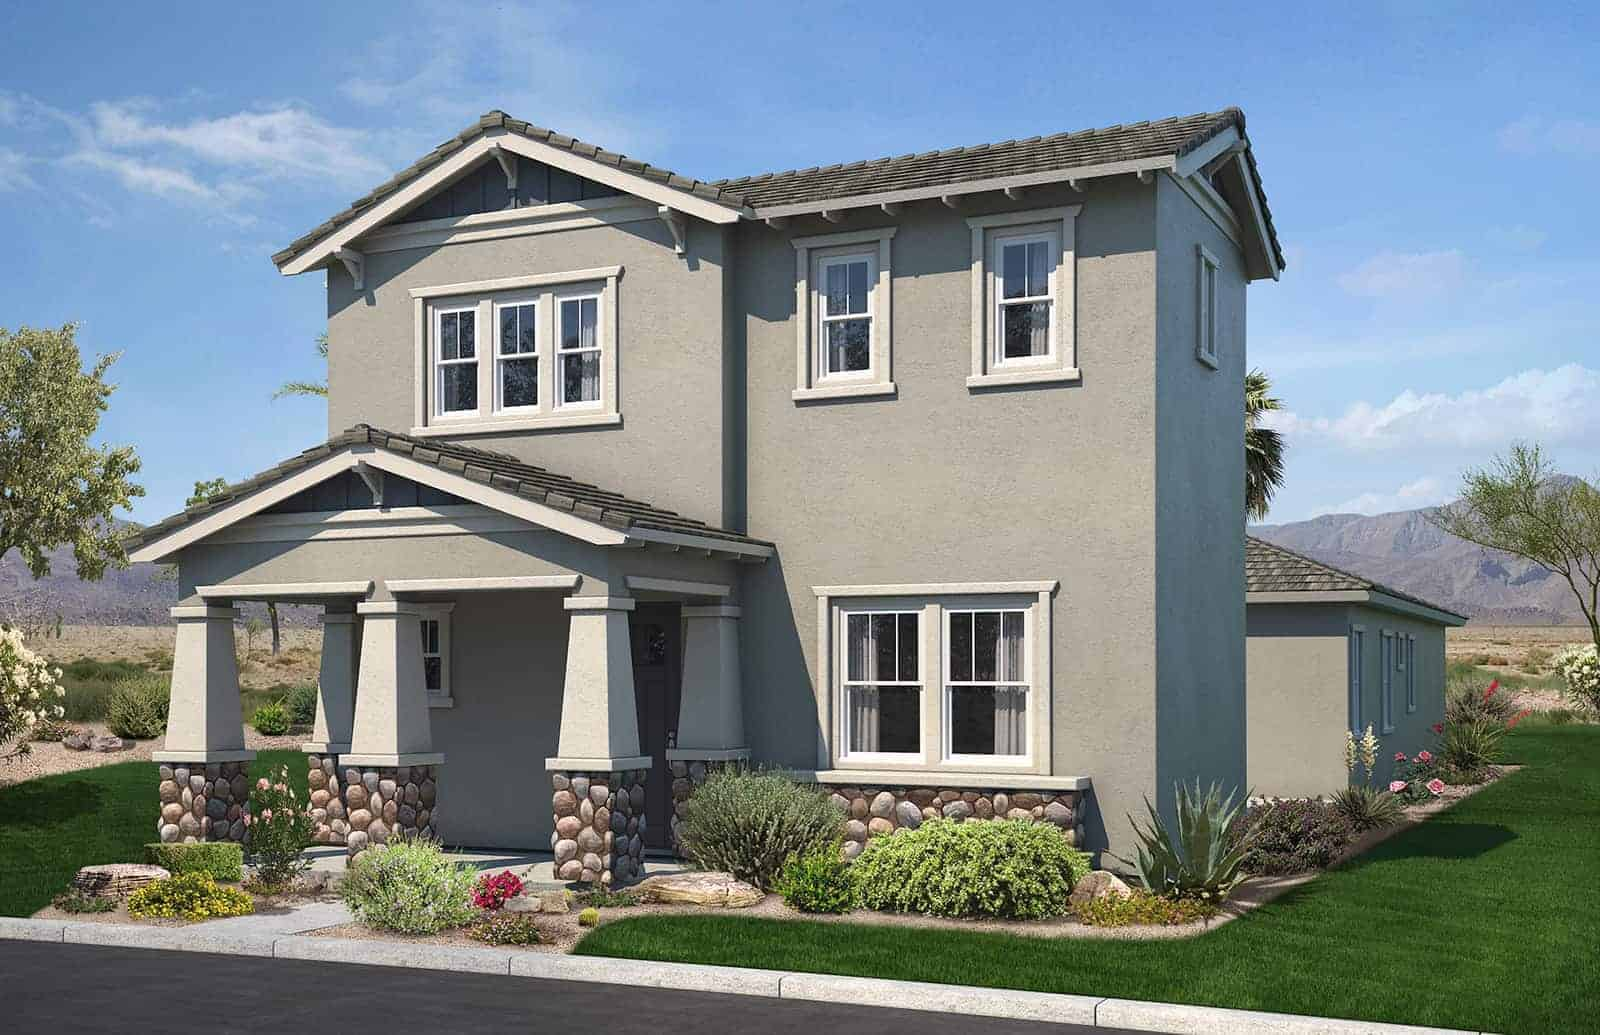 Cottages at Verrado   Residence 3   Plan A